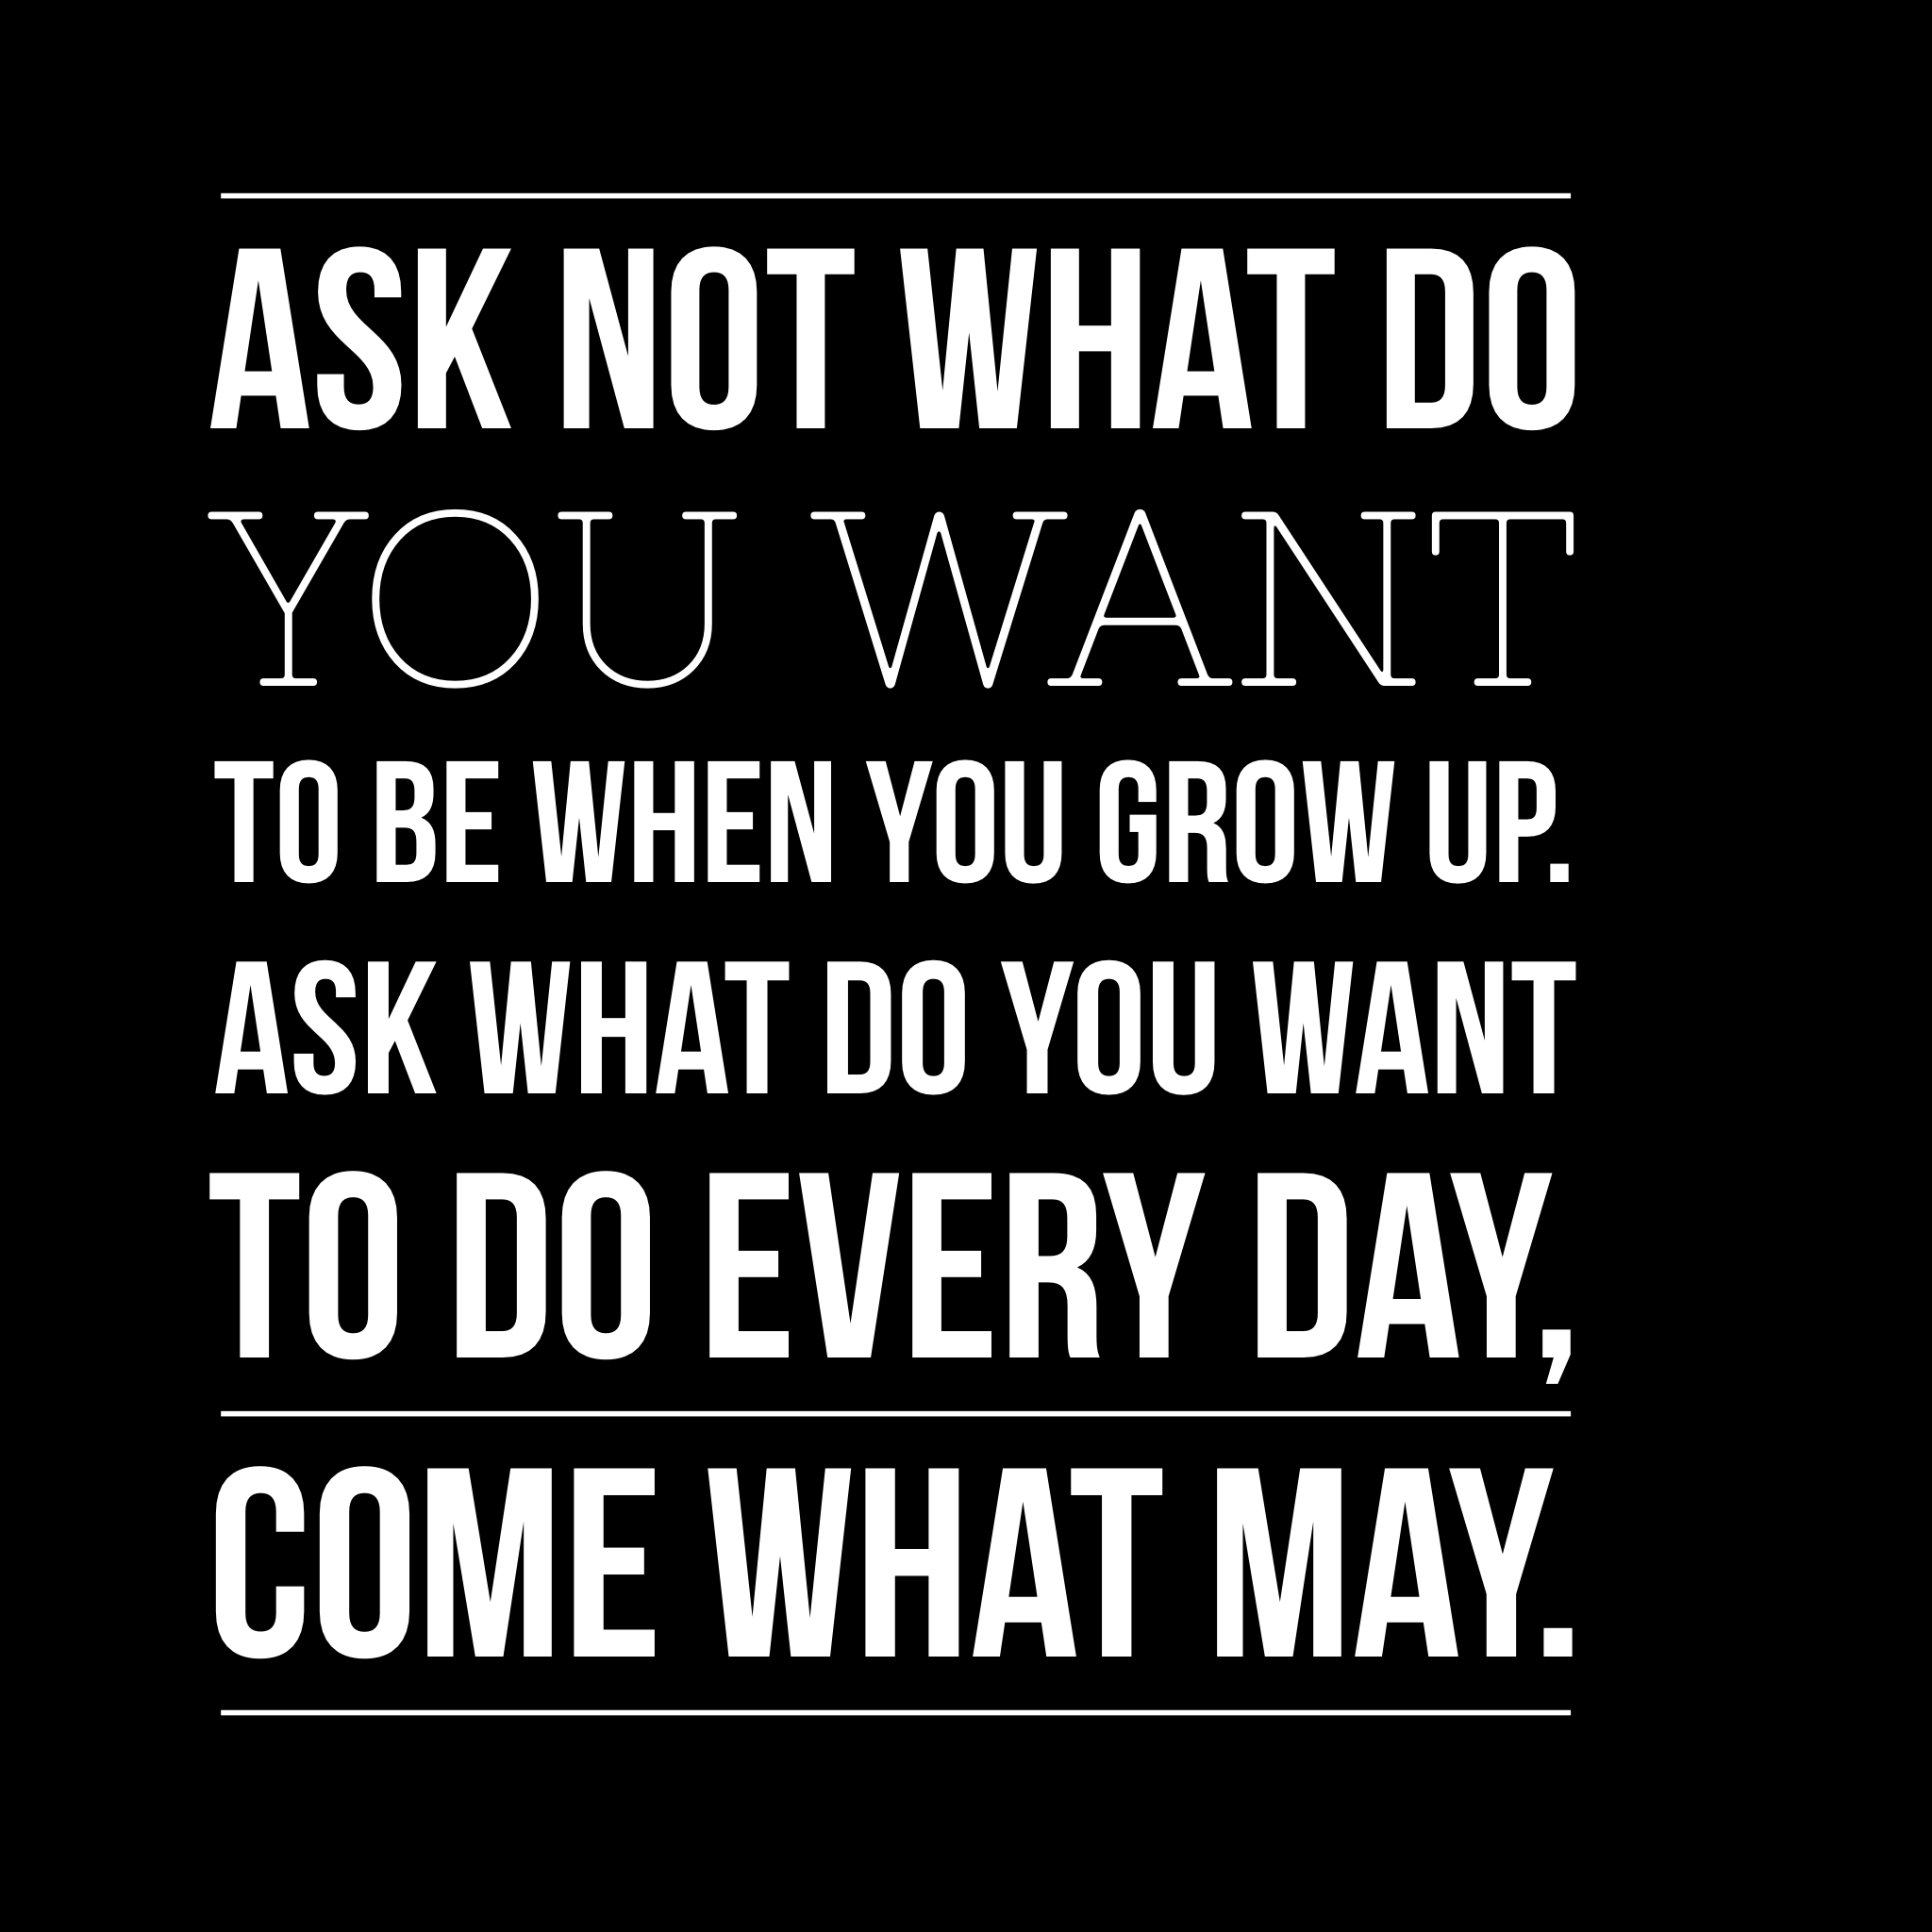 Motivational Quotes Ask Not What Do You Want To Be When You Grow Up Ask What Do You Want To Do Every Day Co Motivational Quotes Inspirational Quotes Quotes